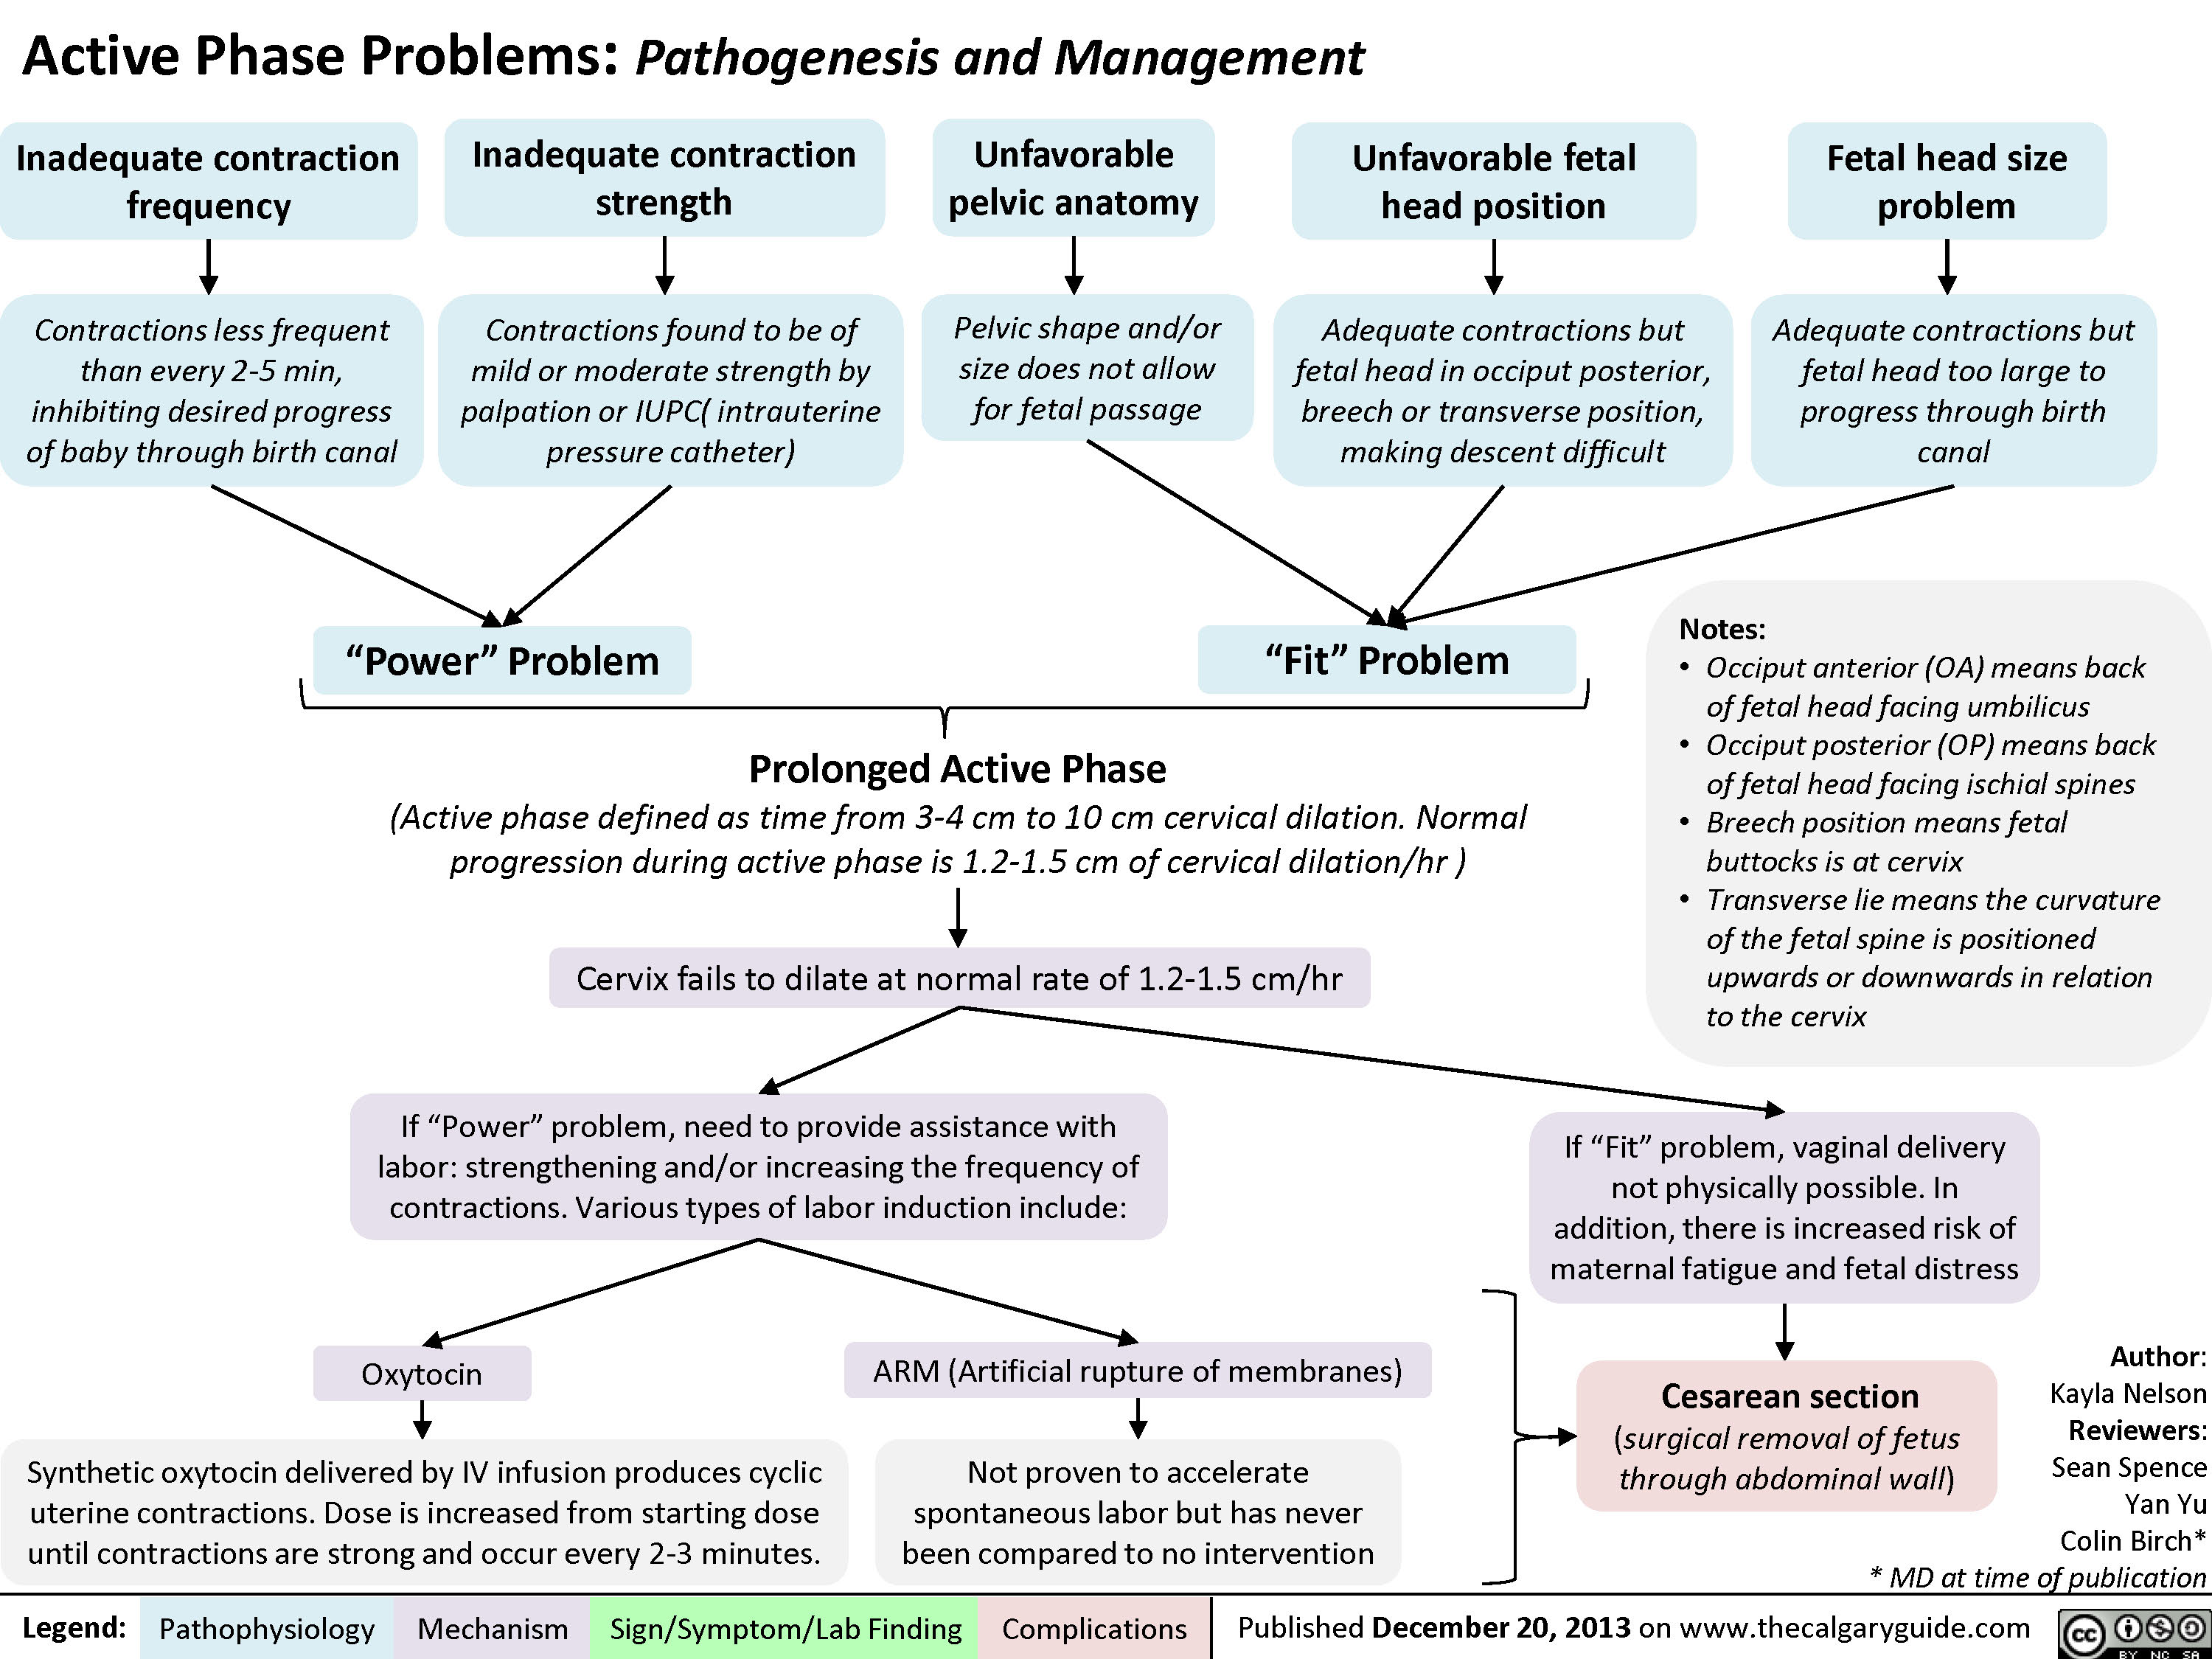 Active Phase Problems: Pathogenesis and Management